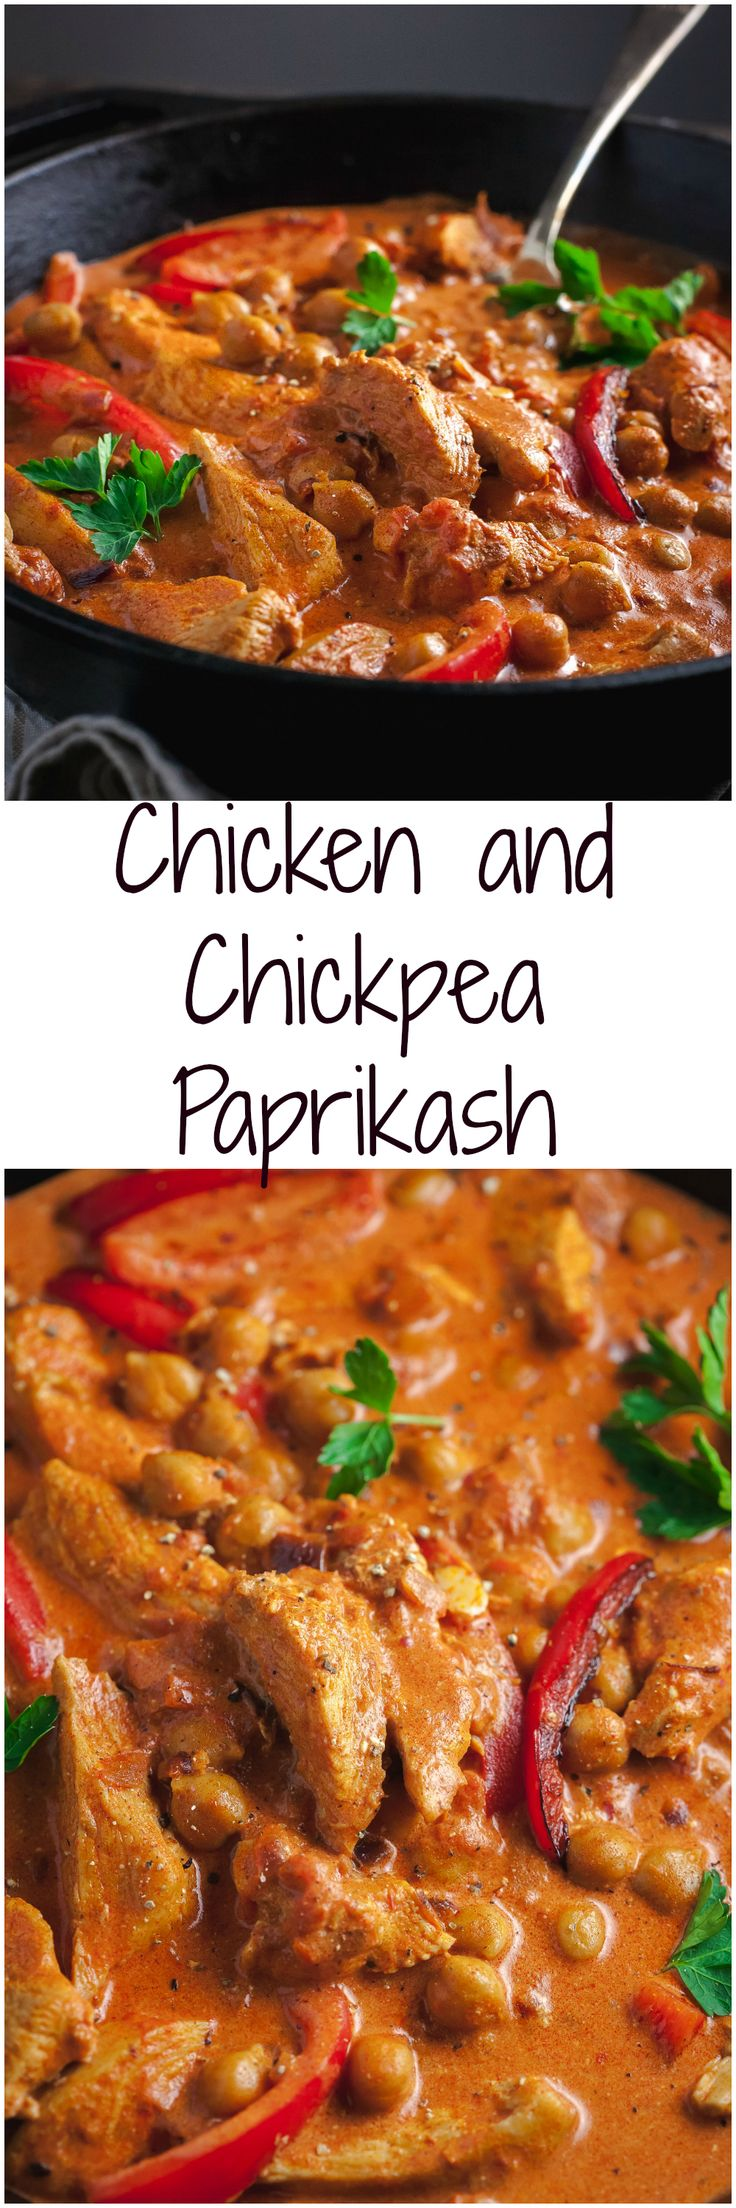 My FAVORITE Recipes: Better Chicken and Chickpea Paprikash - Vikalinka